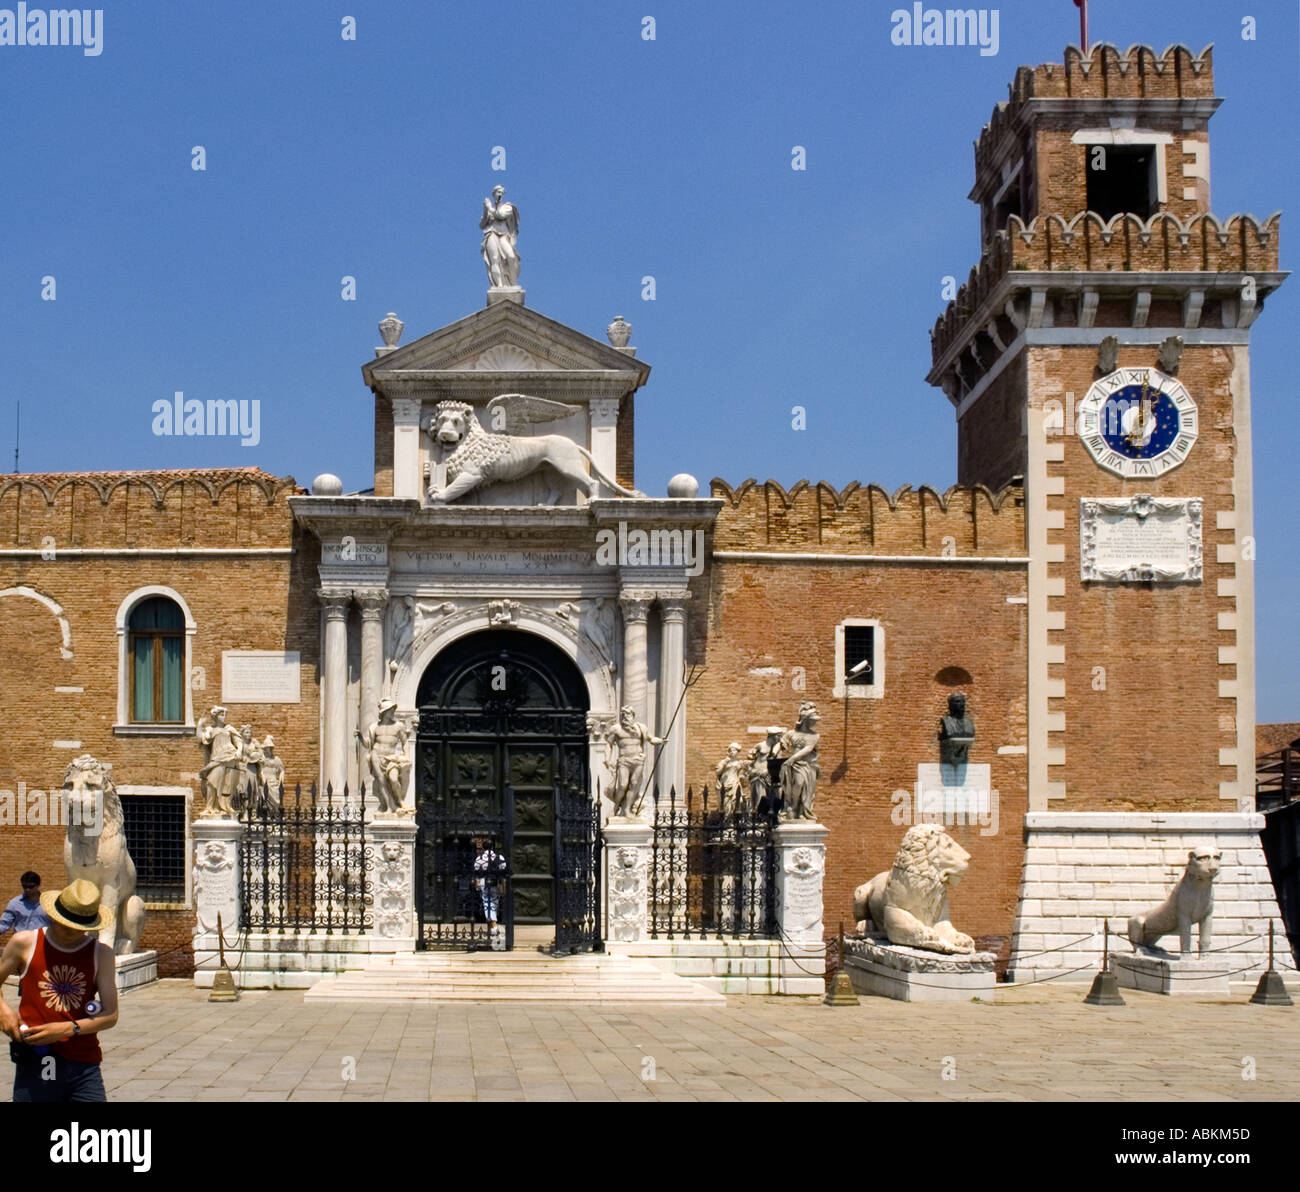 the Arsenale in Venice, Italy - Stock Image